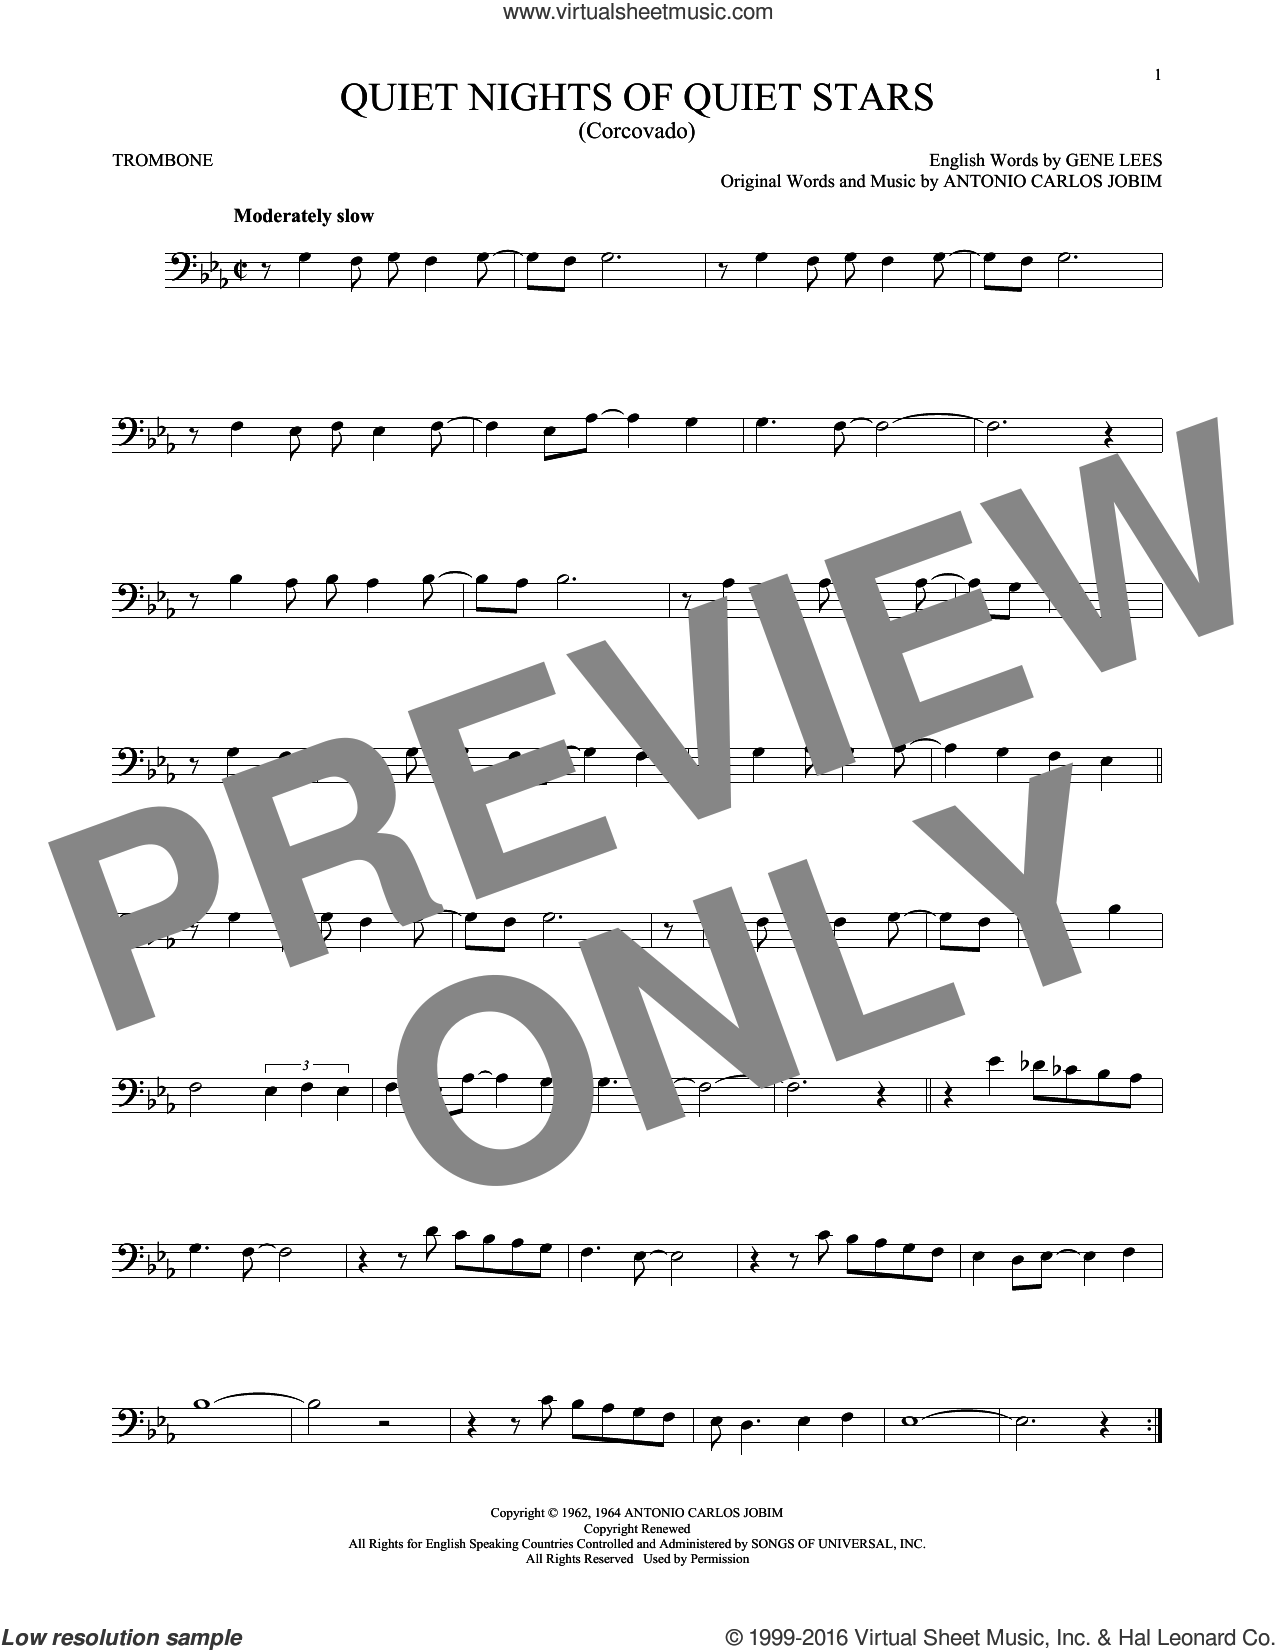 Quiet Nights Of Quiet Stars (Corcovado) sheet music for trombone solo by Andy Williams, Antonio Carlos Jobim and Eugene John Lees, intermediate skill level